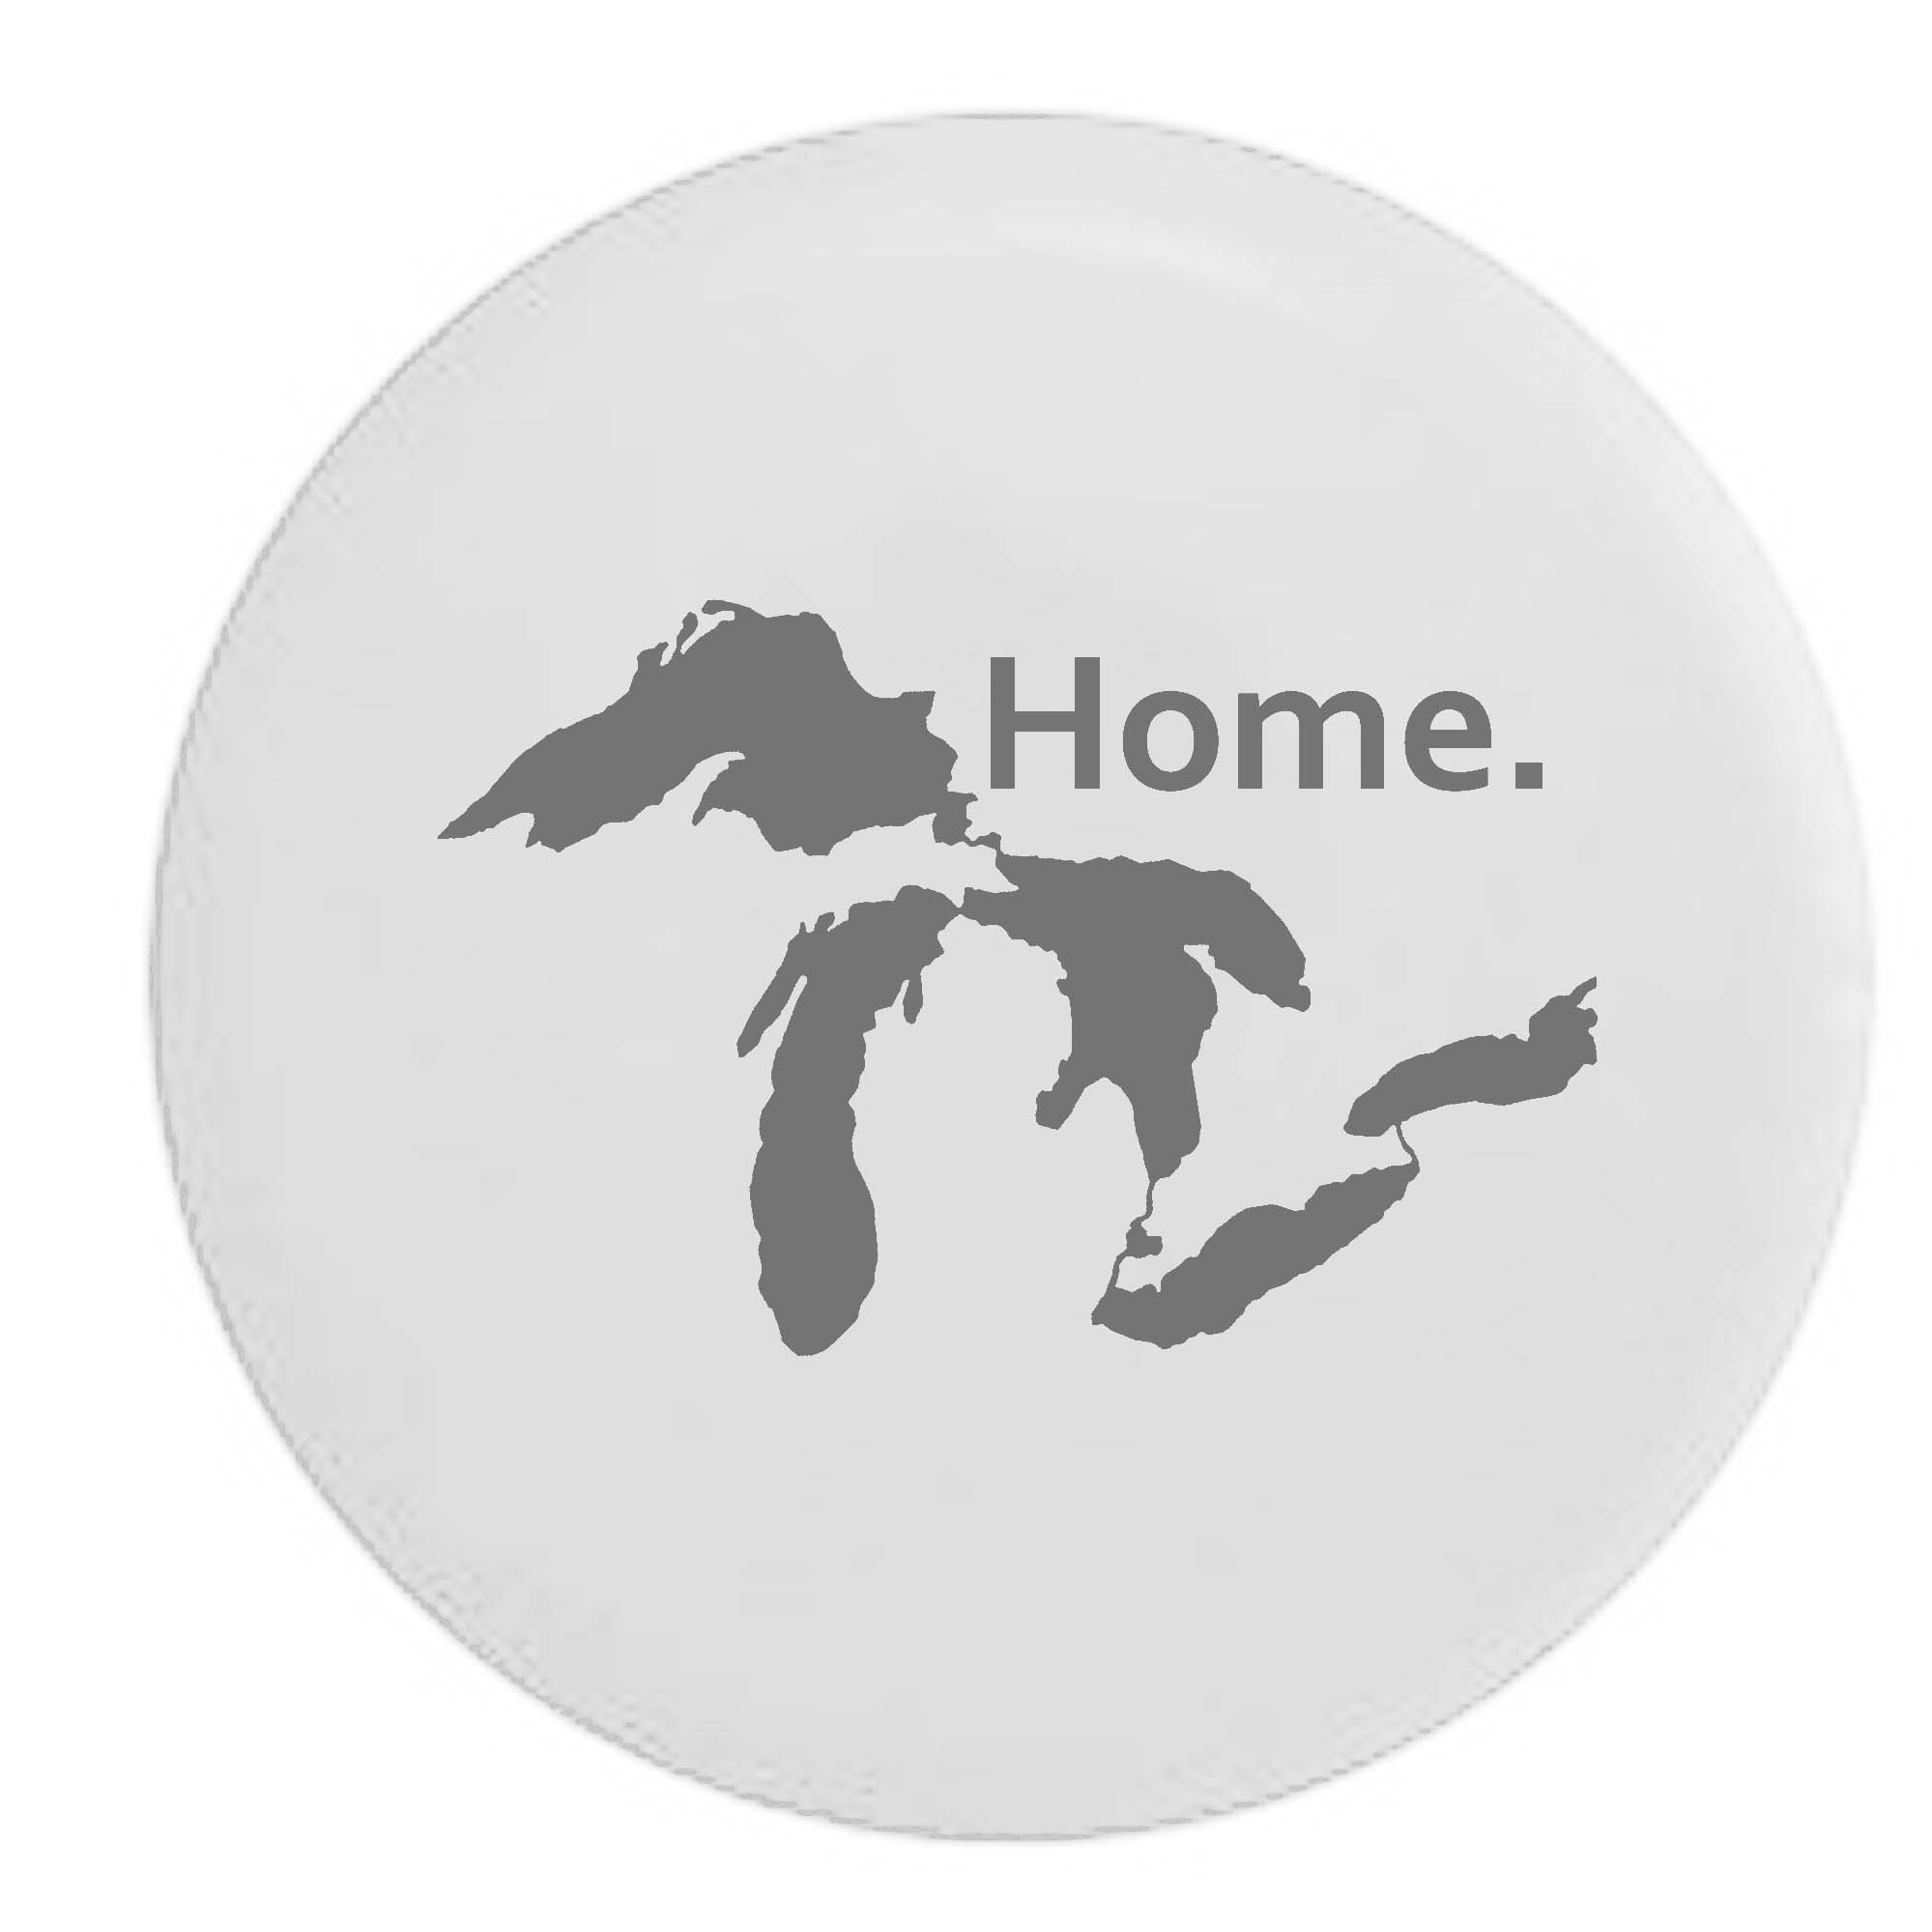 Pike State of Michigan Great Lakes Detroit Home Edition Trailer RV Spare Tire Cover OEM Vinyl White 30 in by Pike Outdoors